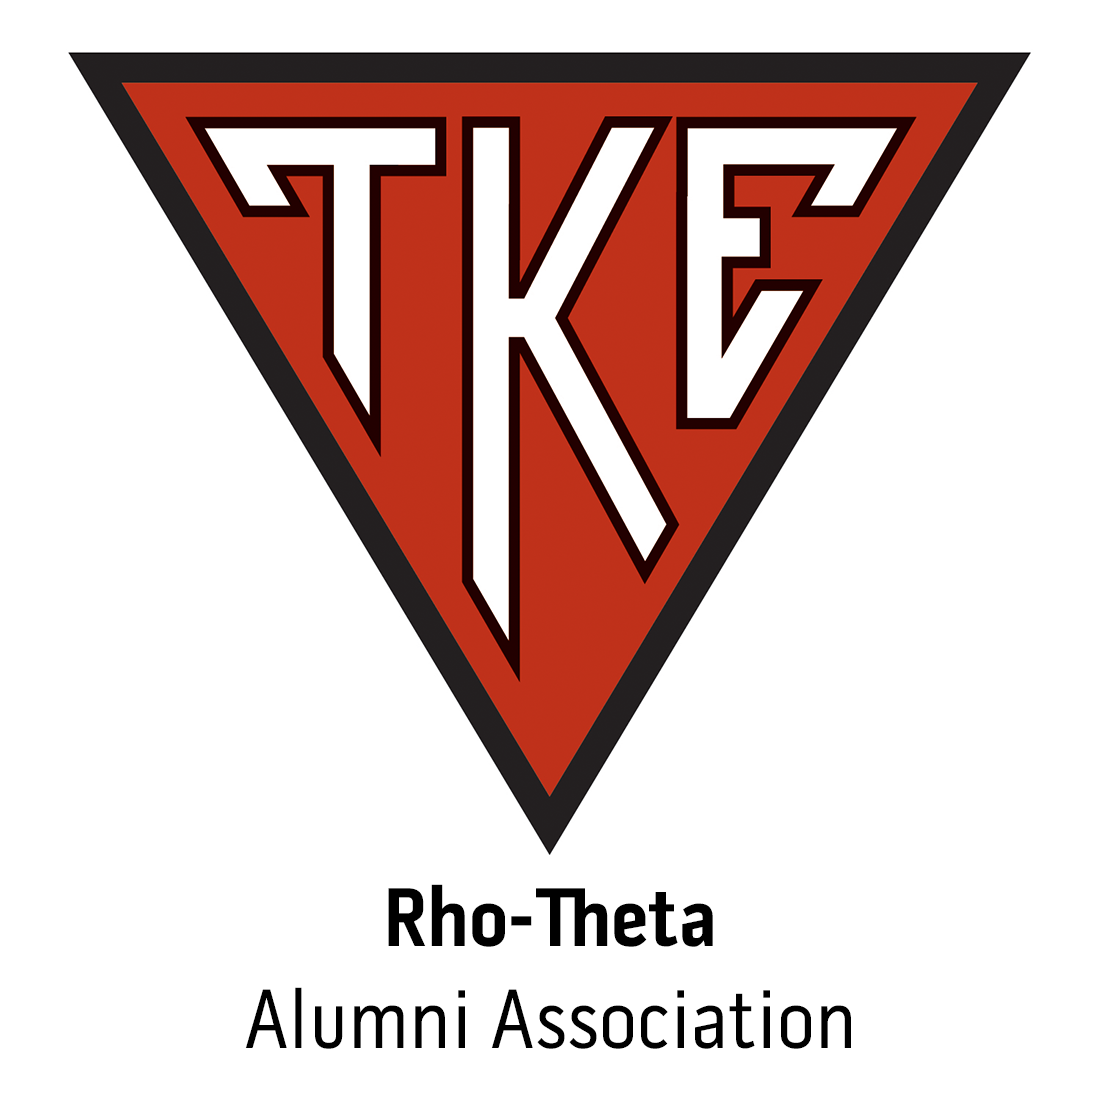 Rho-Theta Alumni Association Alumni at Lake Superior State University